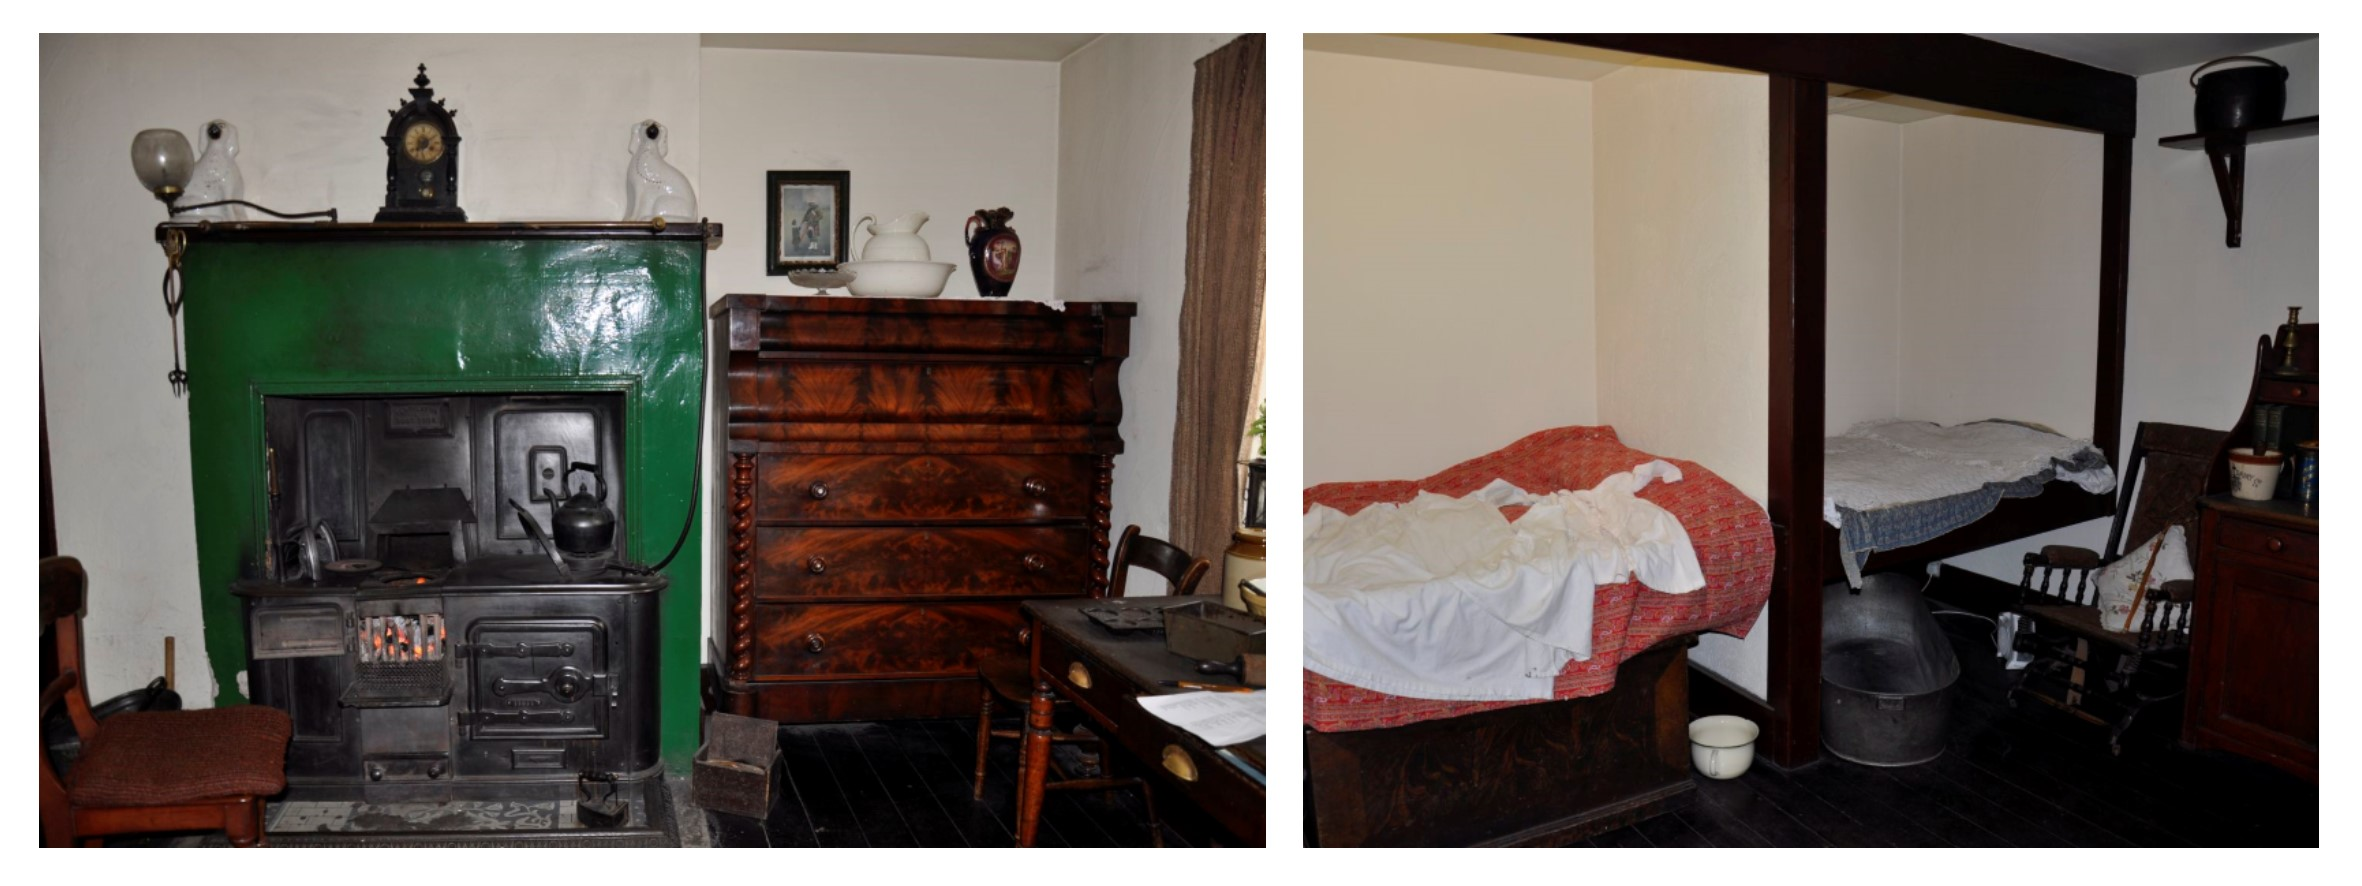 Two photographs showing the interior of the 1910s cottage at Summerlee, with cast iron range and recessed beds